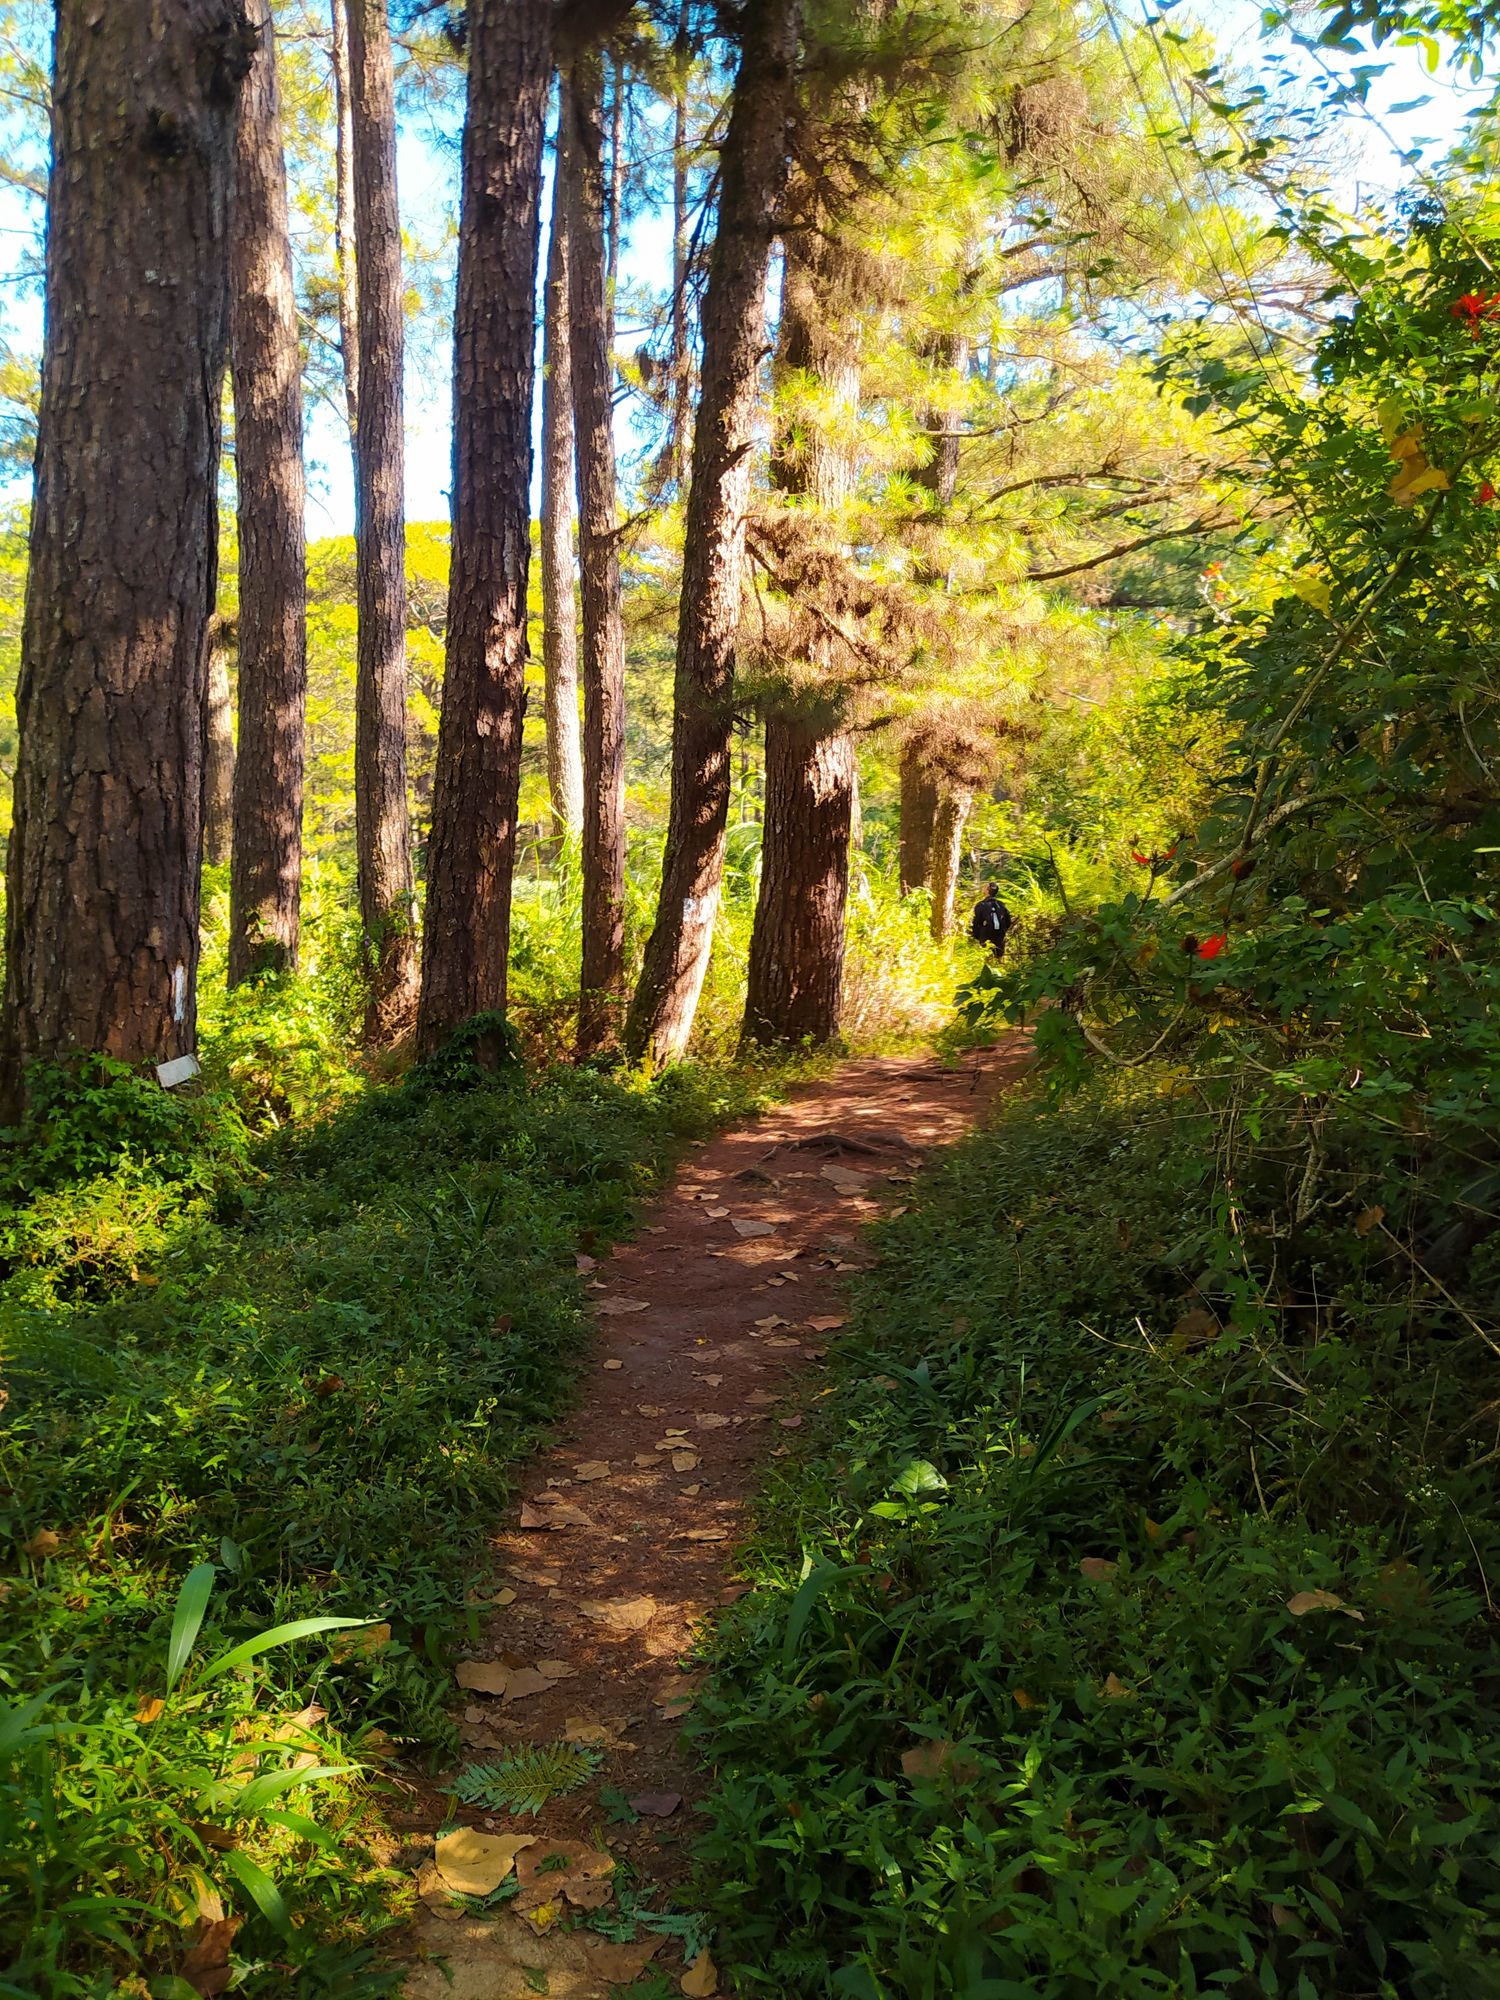 Dirt footpath running between thick vegetation and pine trees somewhere along the Eco-Trail